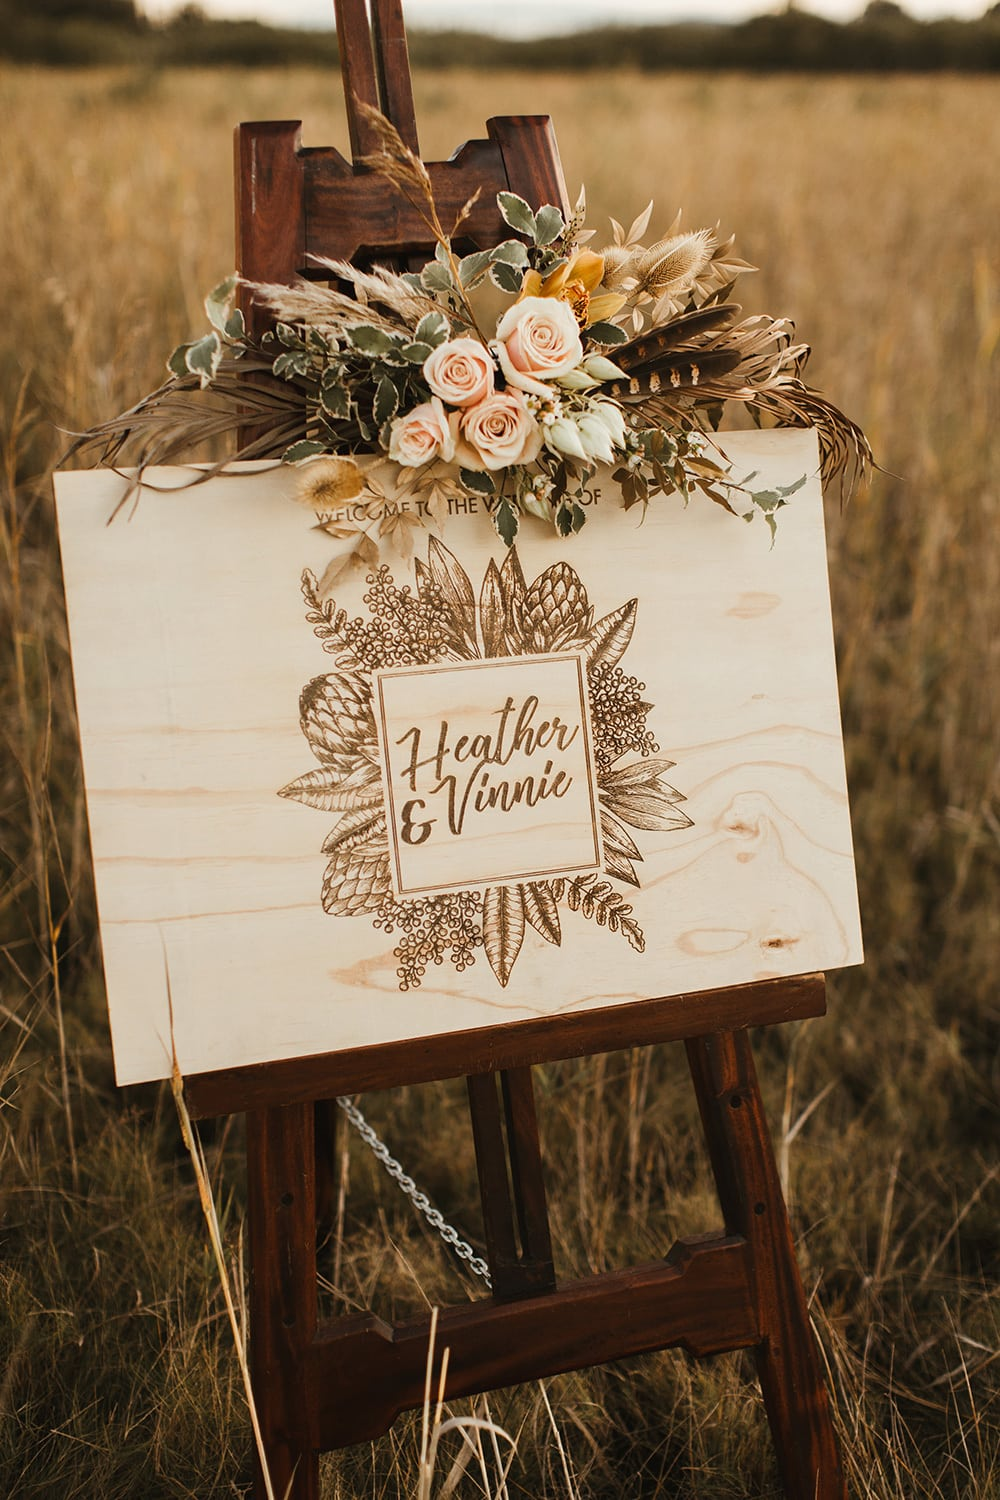 Fields of Gold Wedding Inspiration | Photography: Sam McGrath Photographer